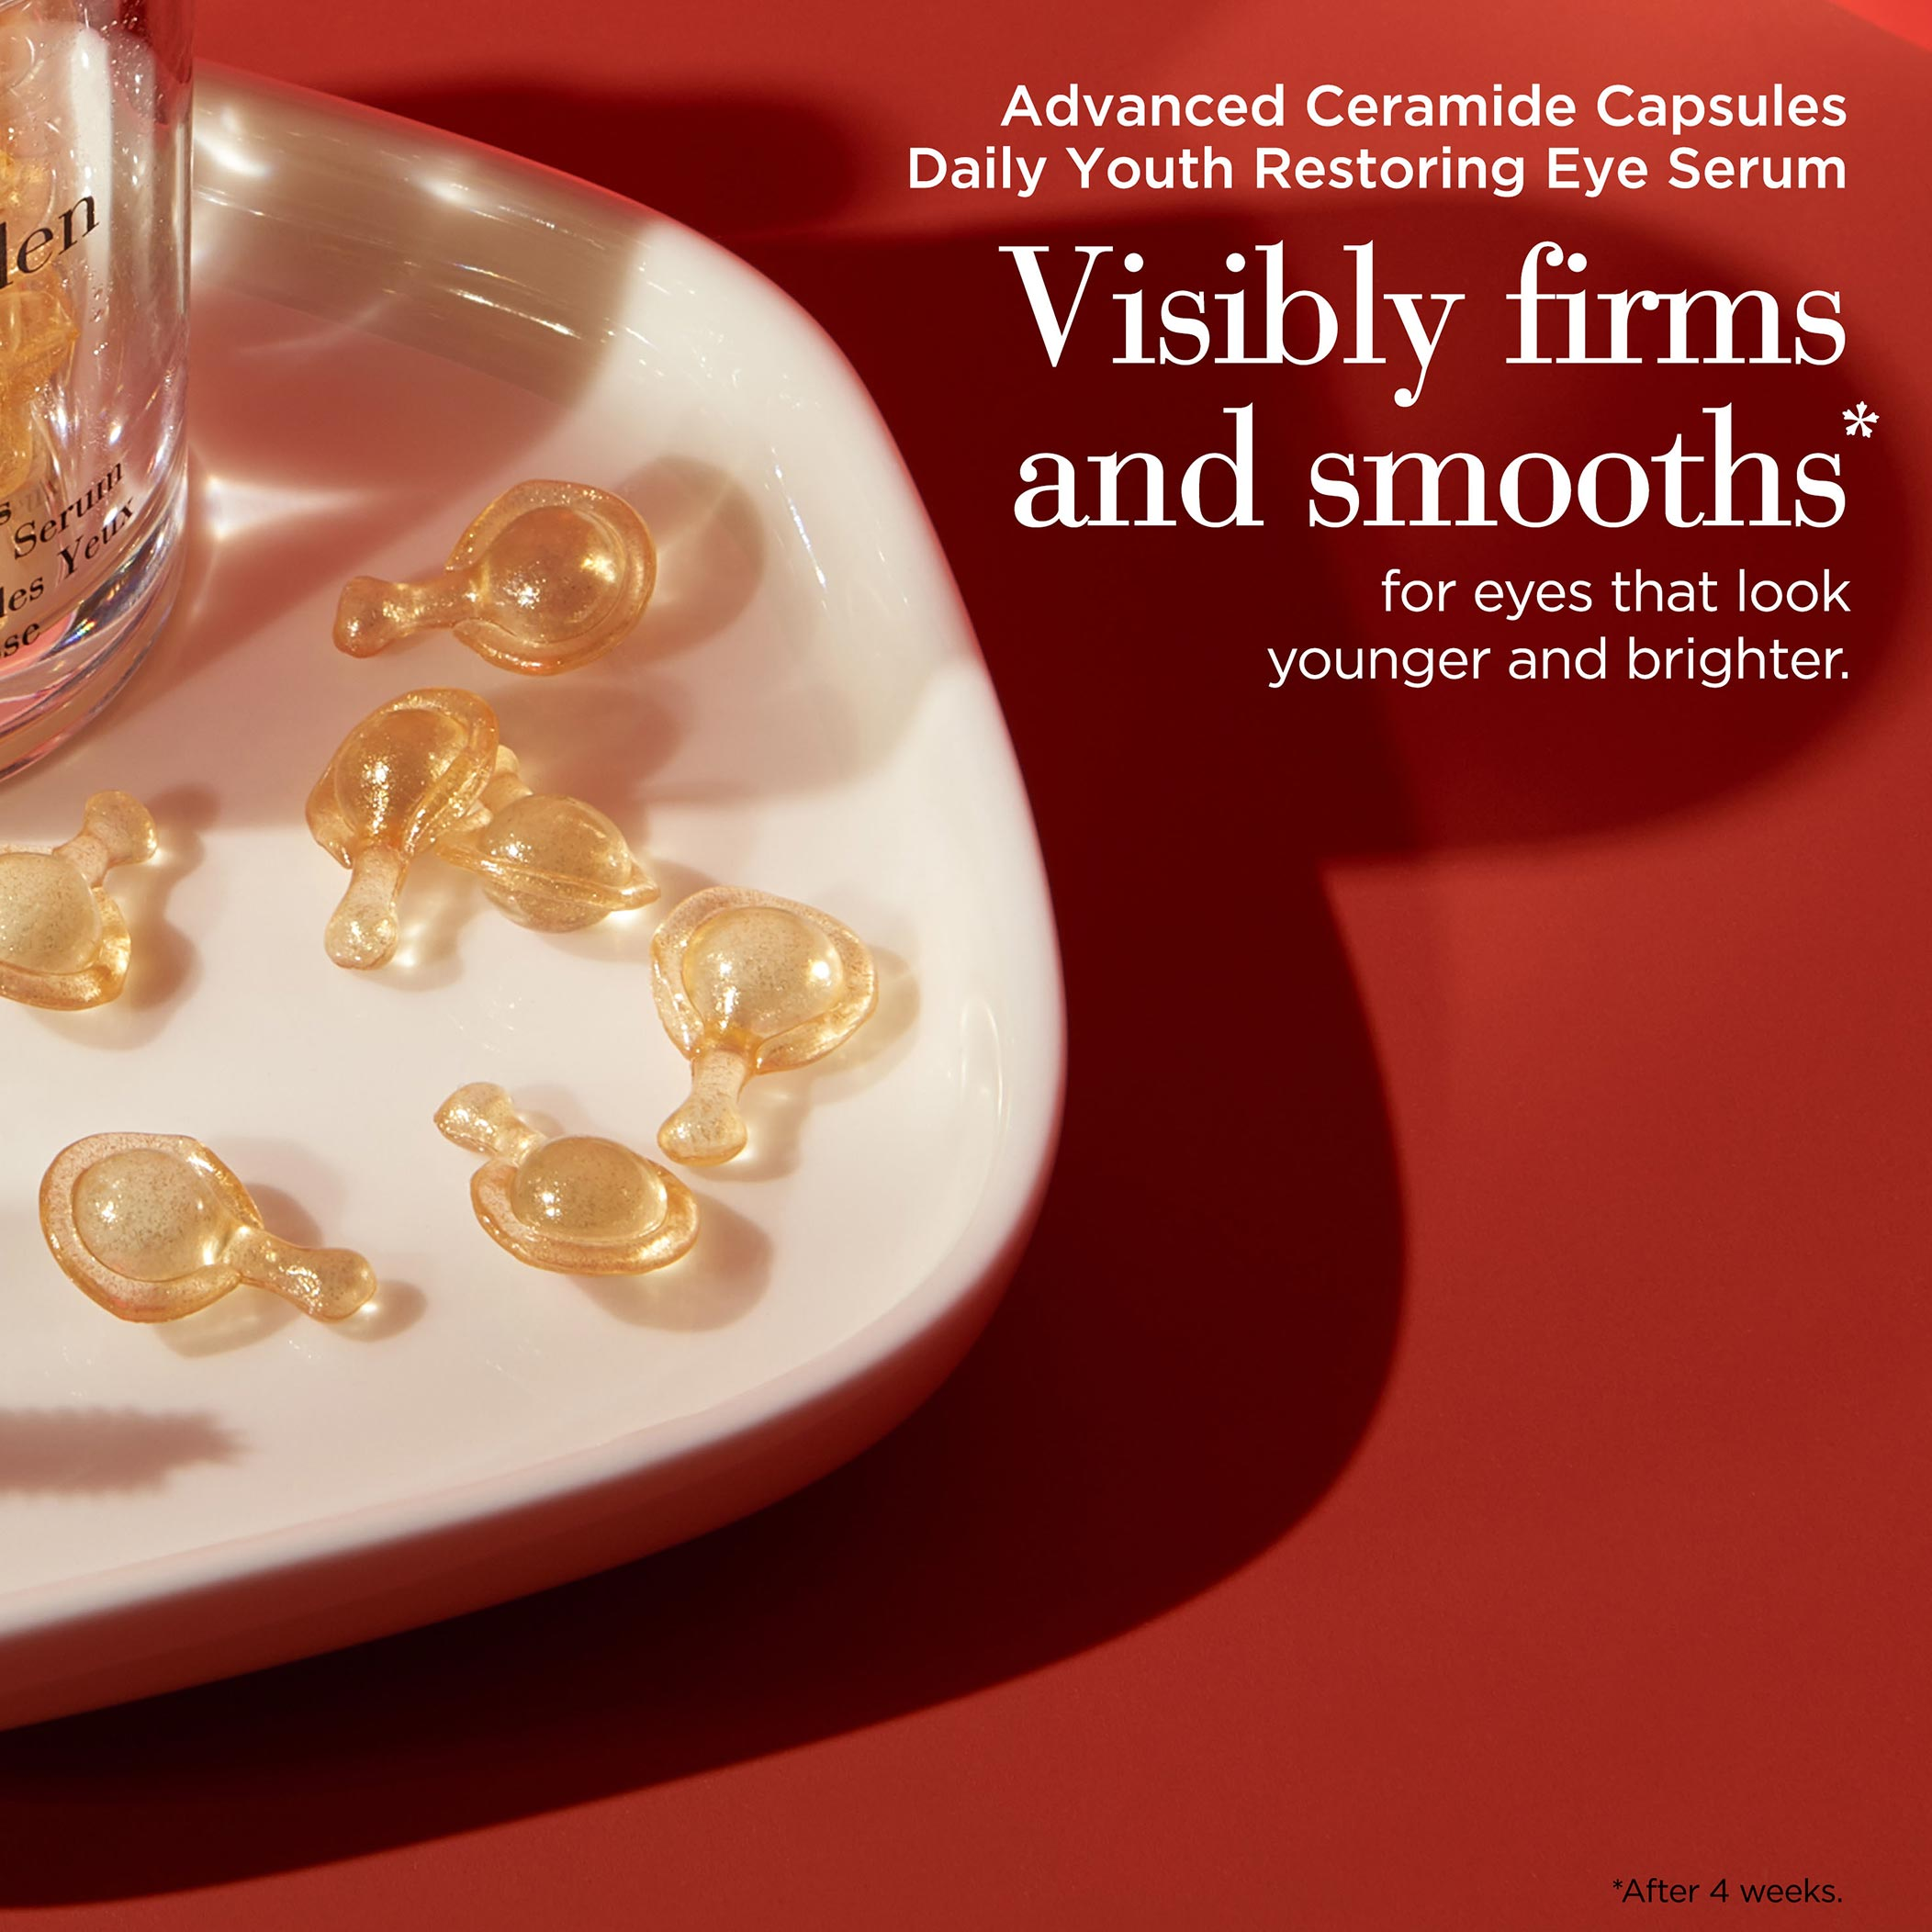 Advanced Ceramide Capsules Eye Serum visibly firms and smooths after 4 weeks for eyes that look younger and brighter